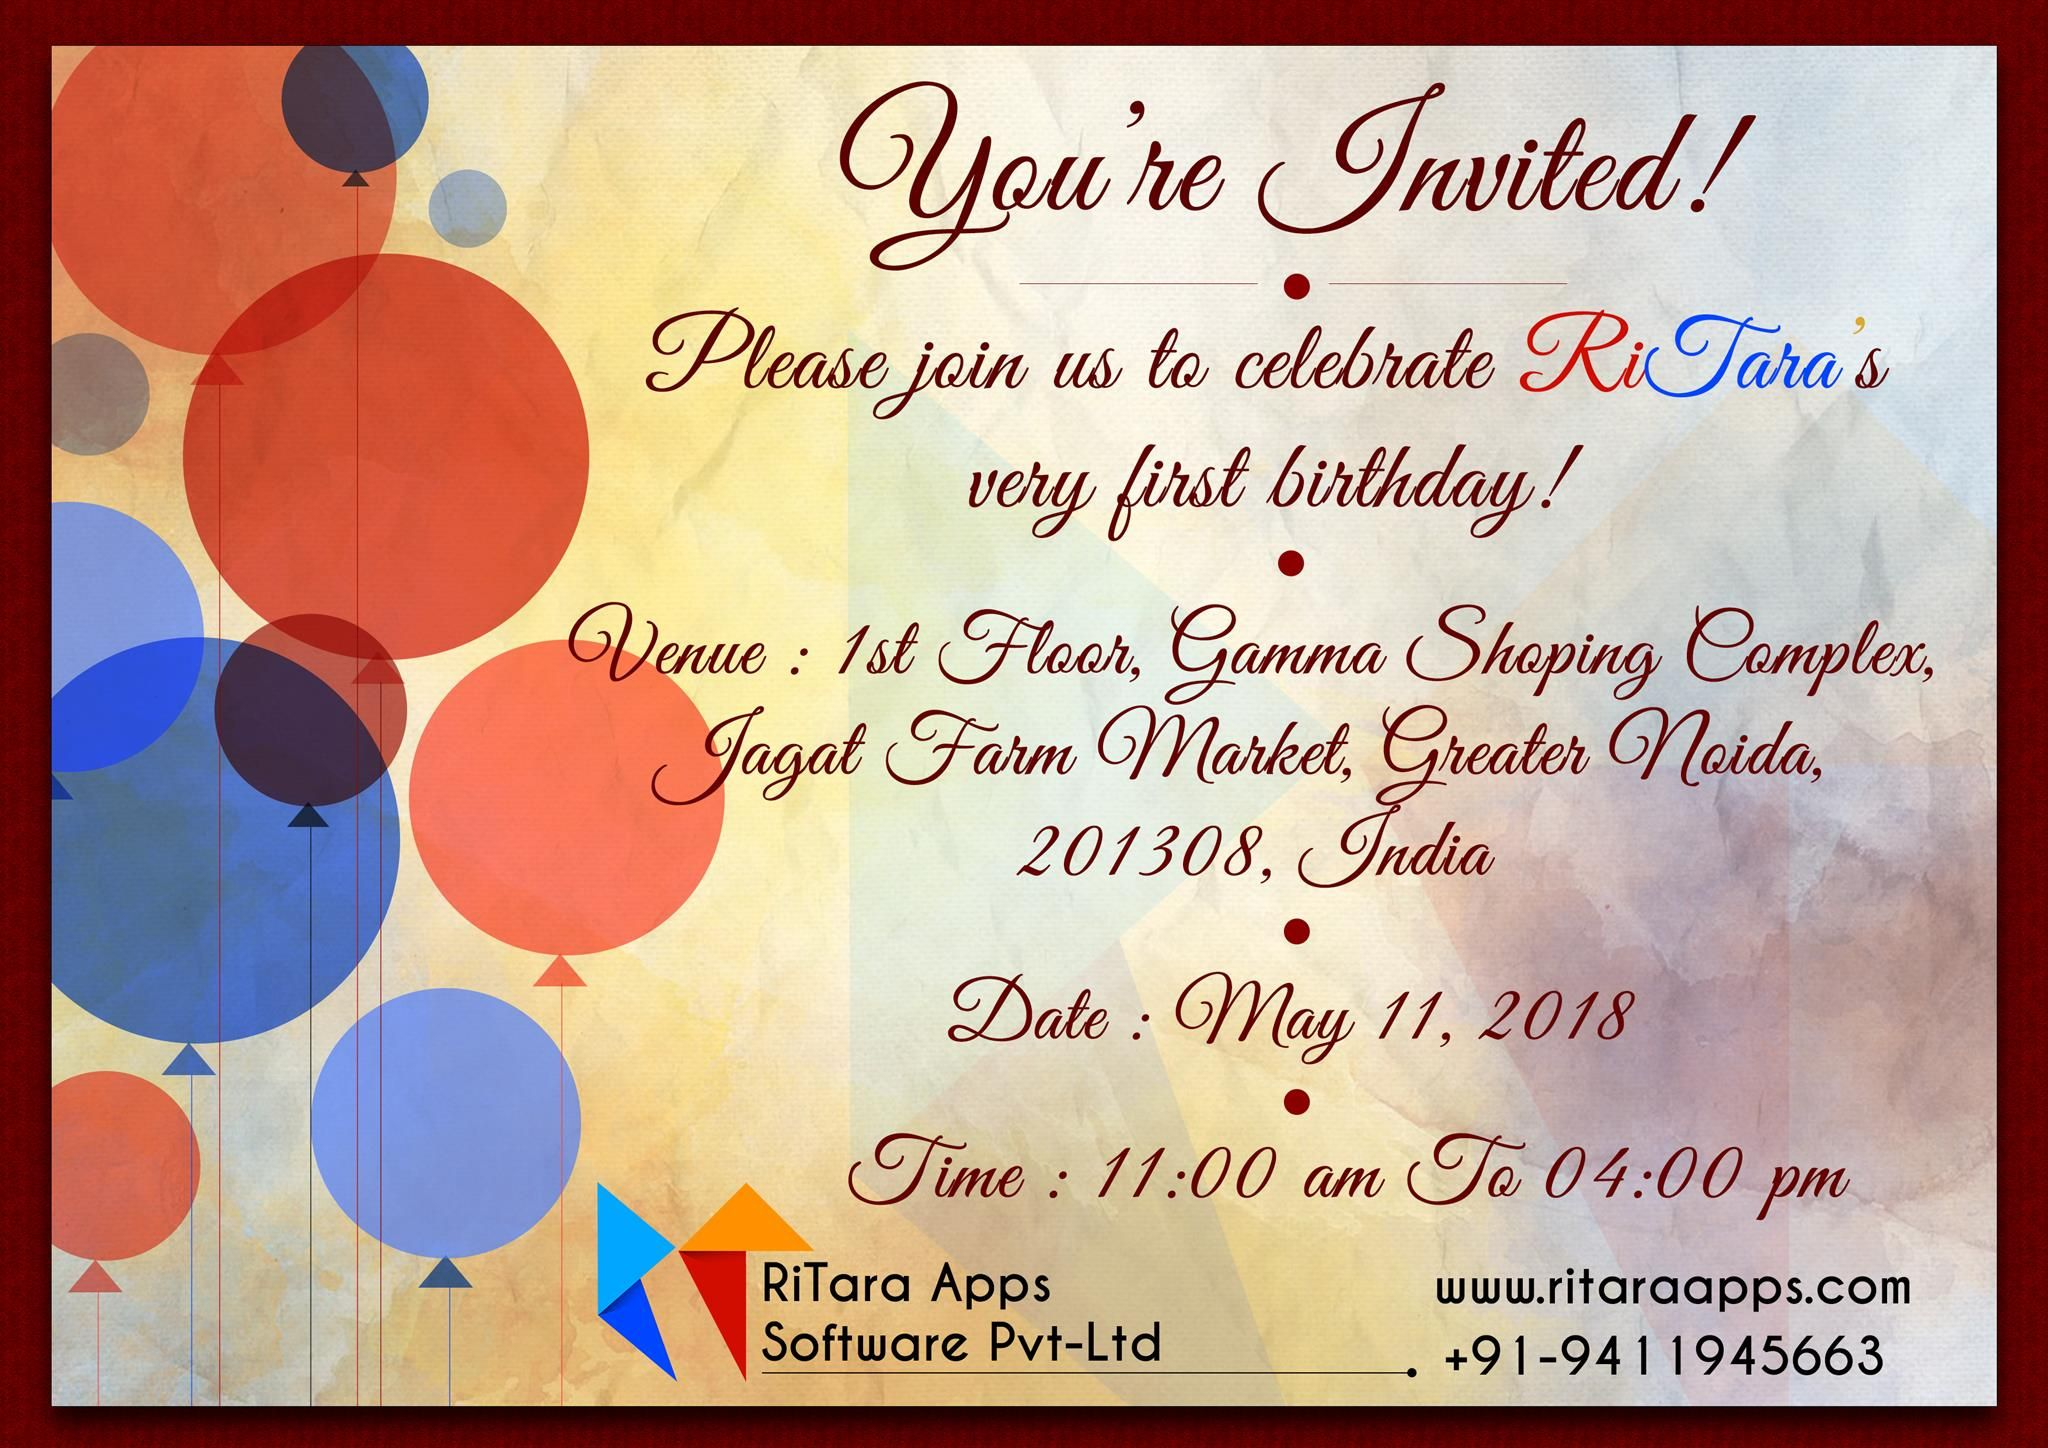 RiTara Apps cordially invites you all to join us on our